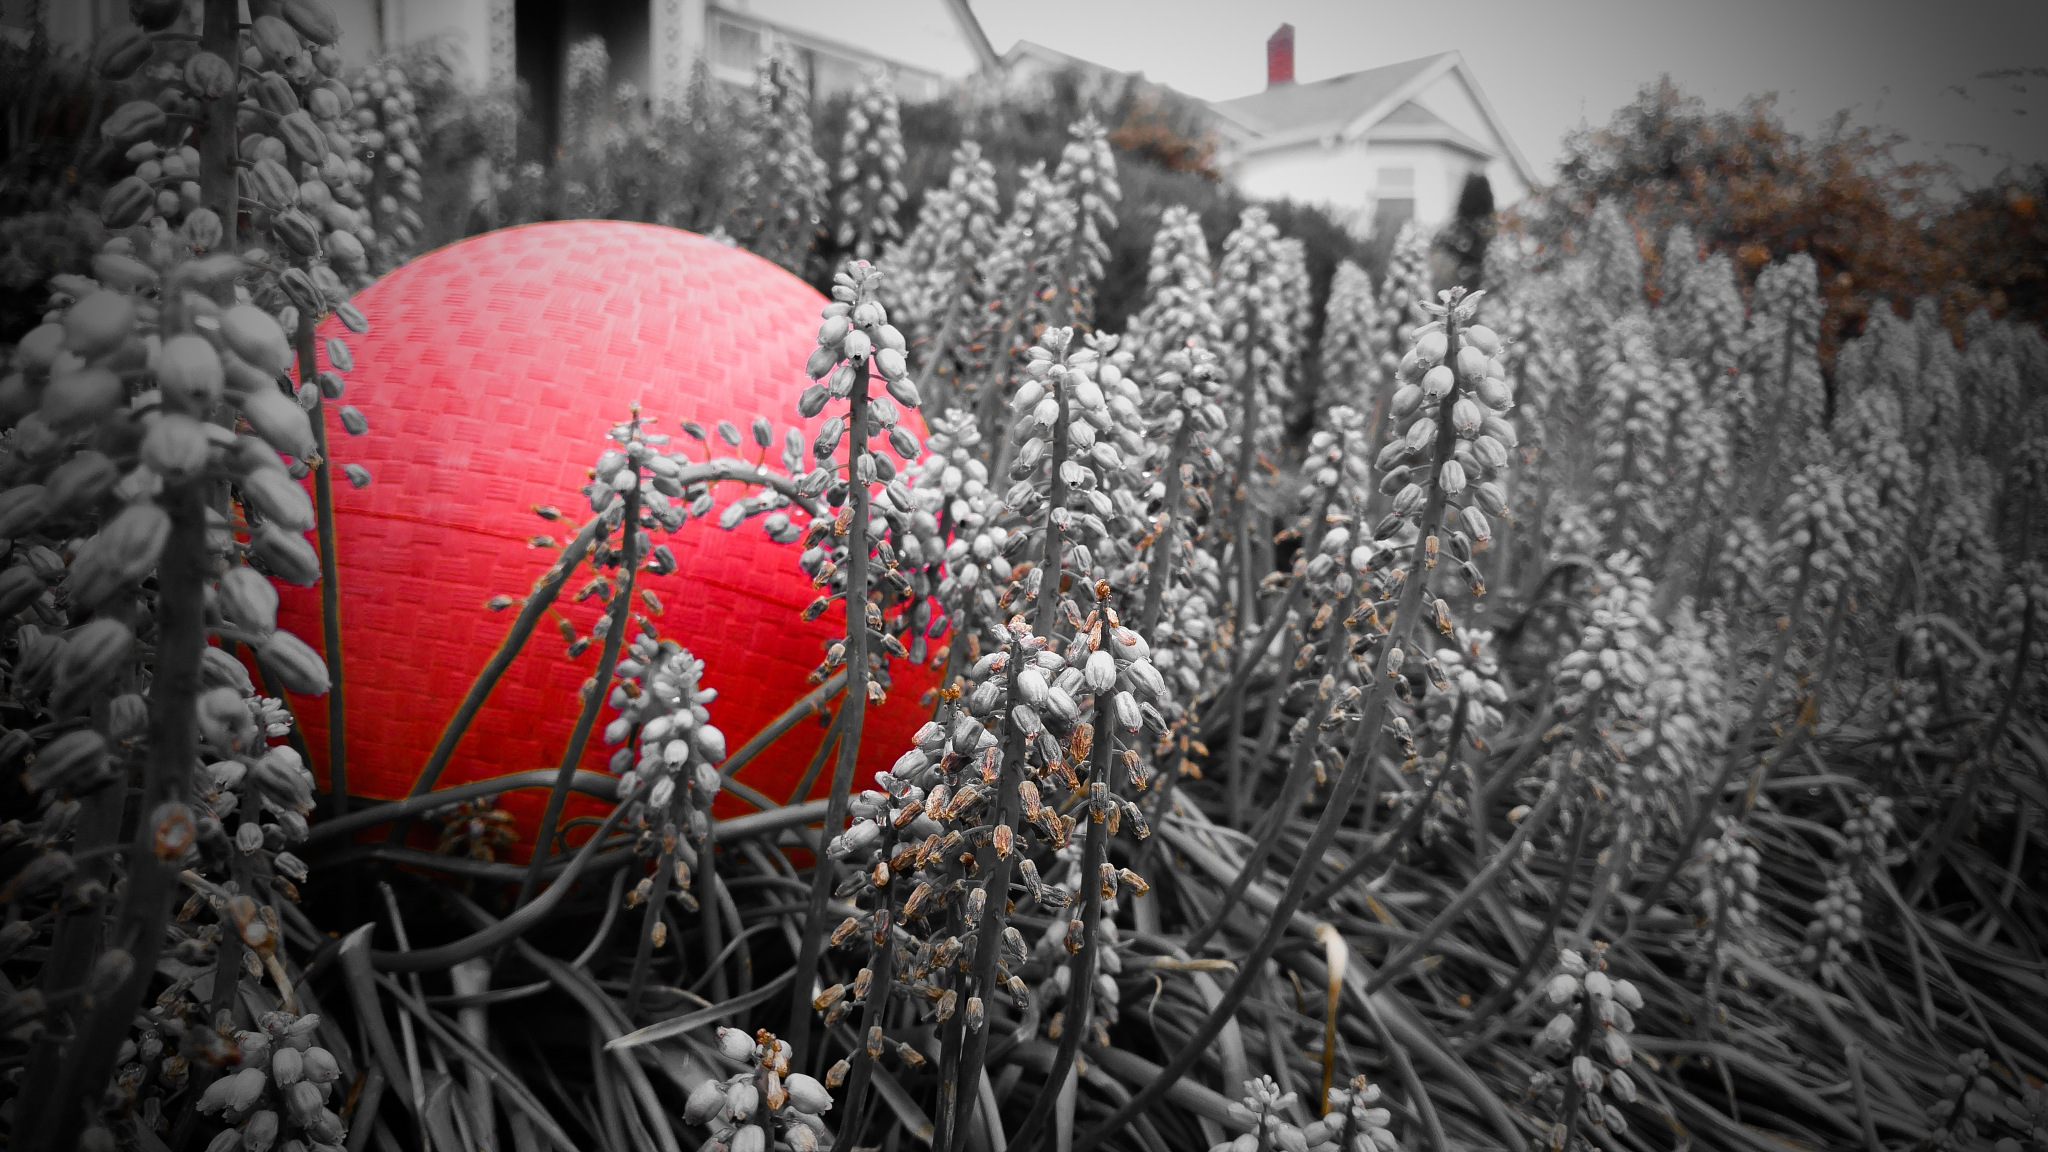 Red ball by Troy Haddad